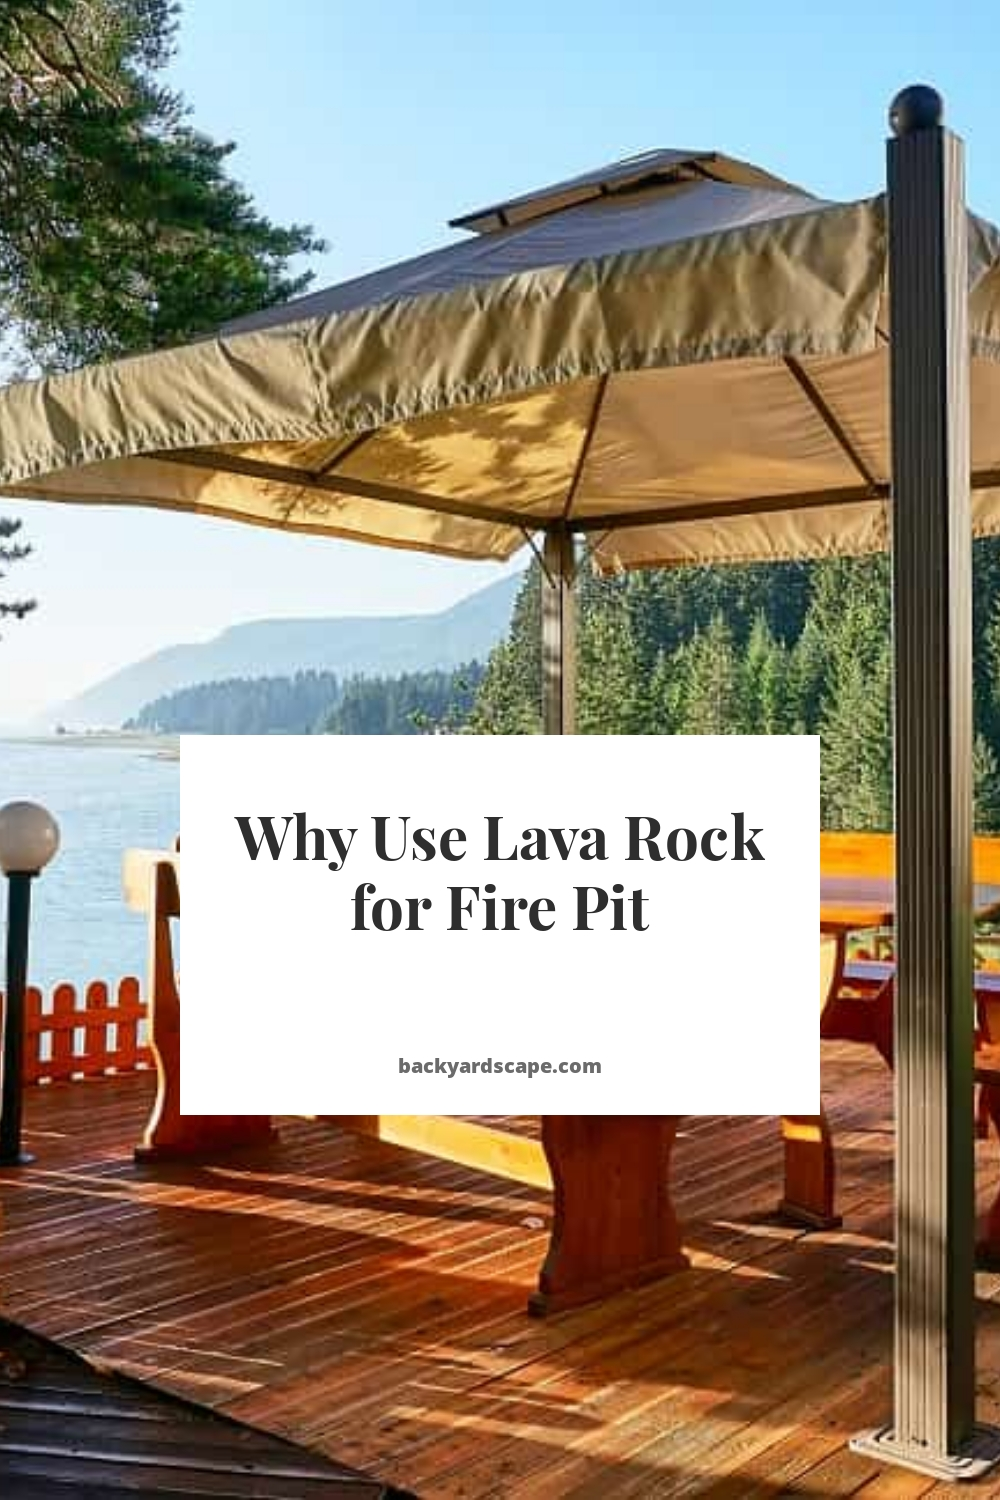 Why Use Lava Rock for Fire Pit